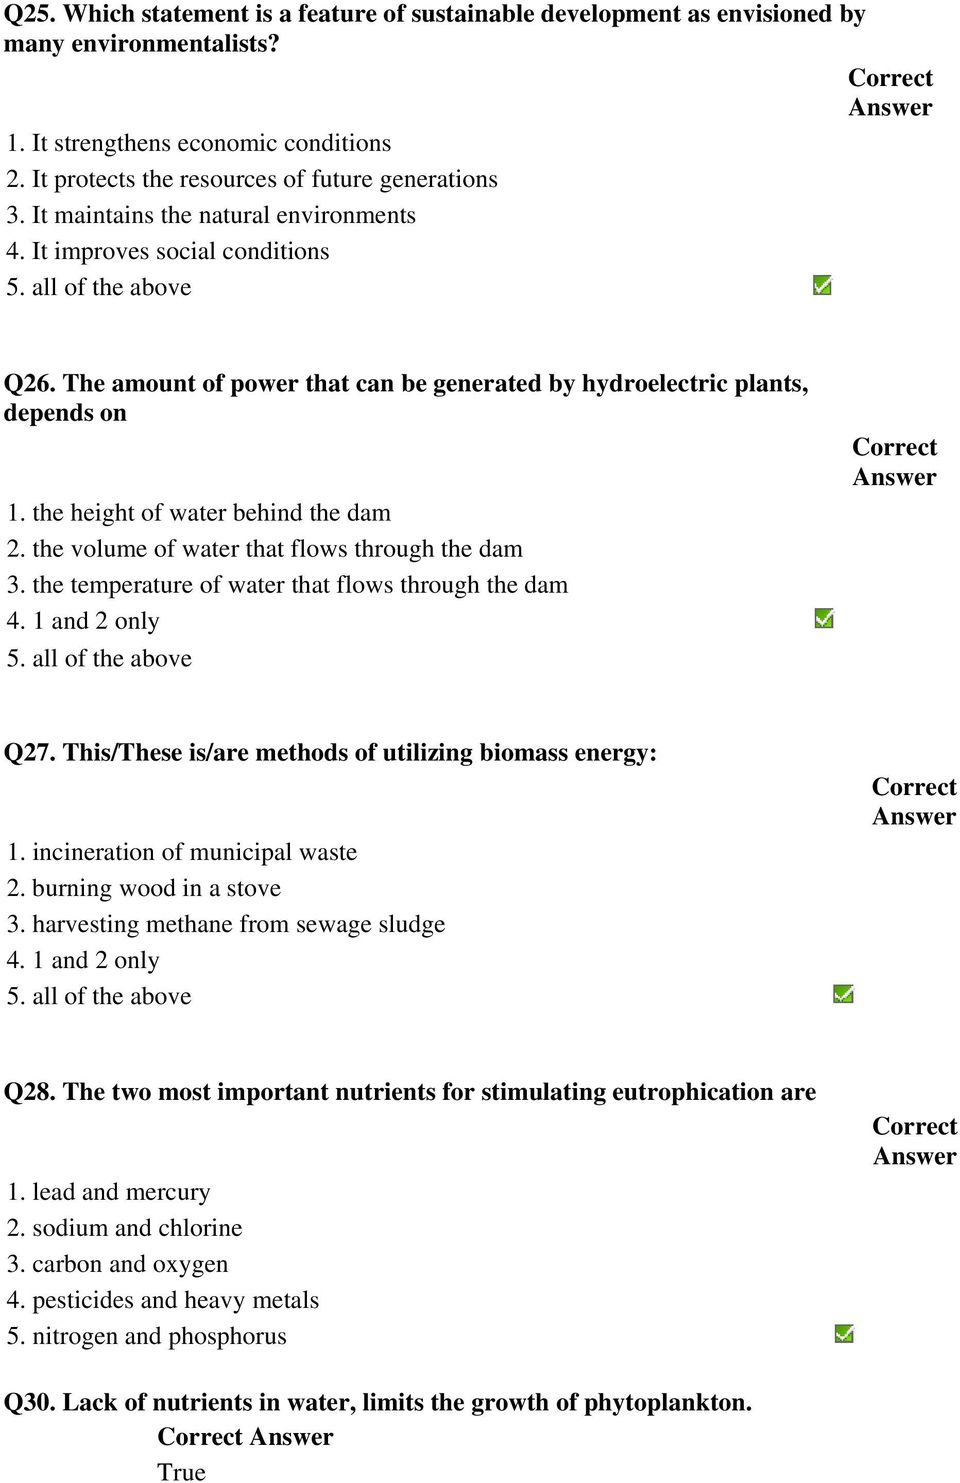 the volume of water that flows through the dam 3. the temperature of water that flows through the dam 4. 1 and 2 only Q27. This/These is/are methods of utilizing biomass energy: 1.